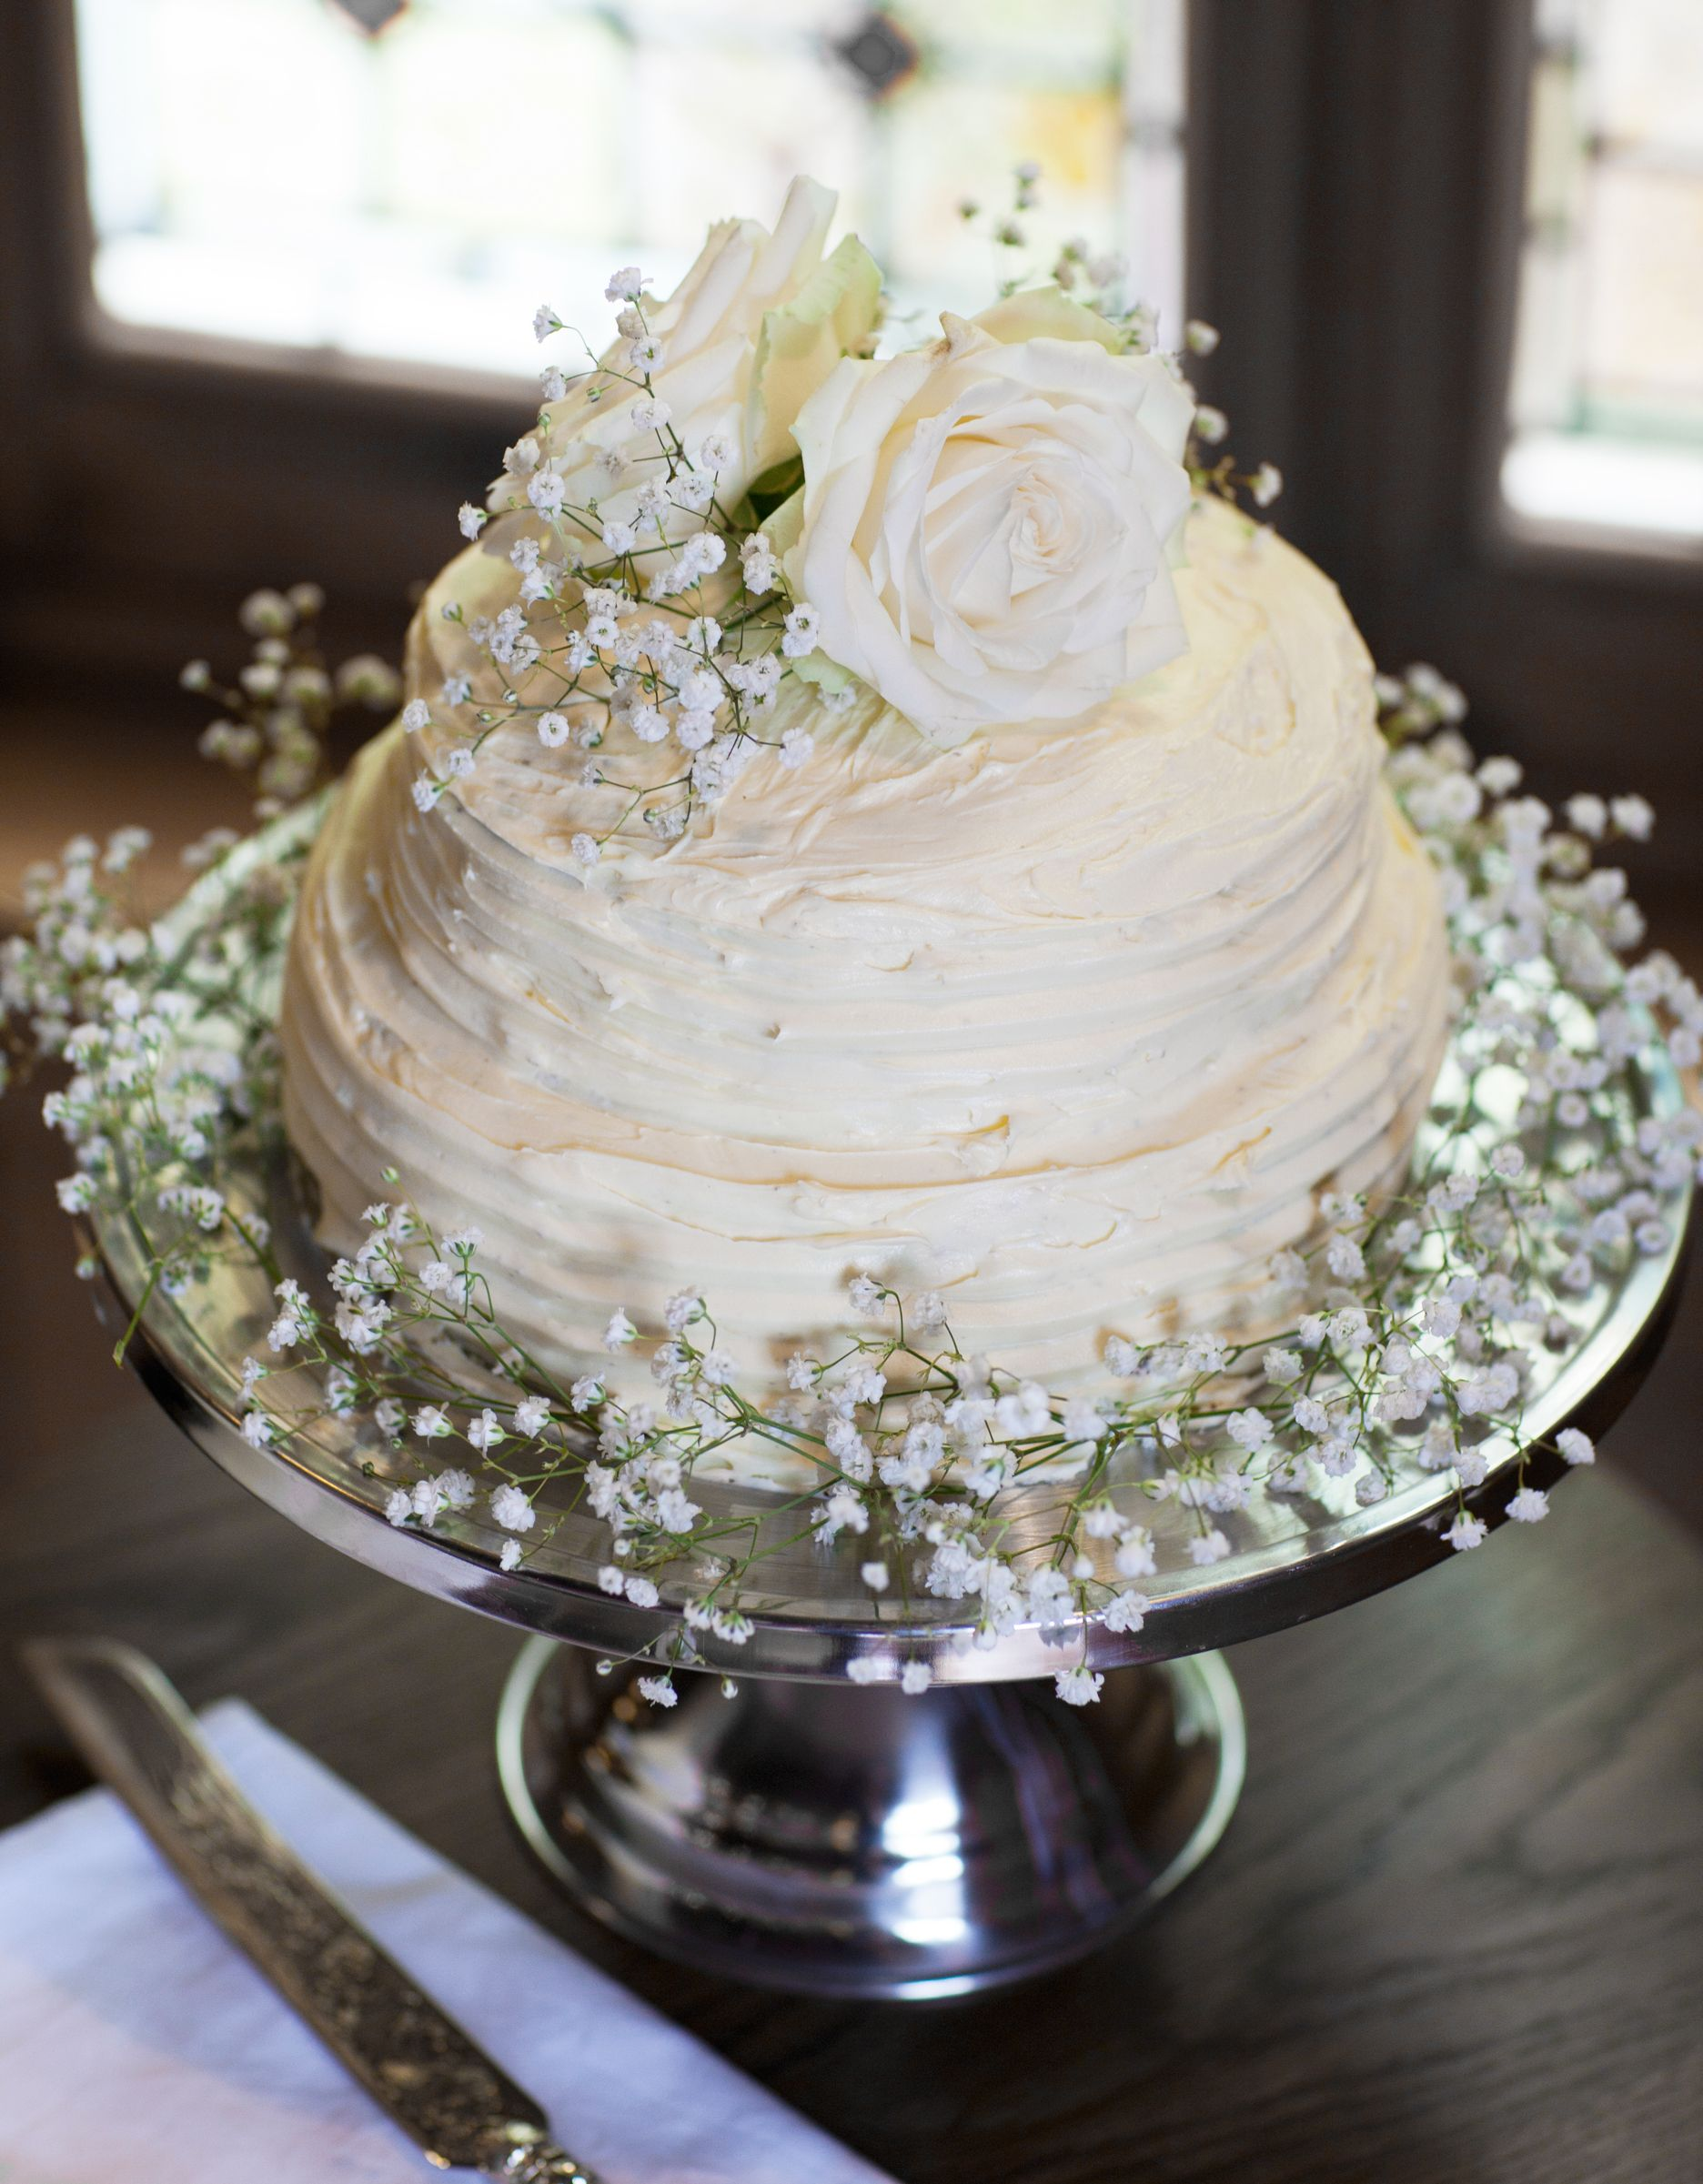 DIY Wedding How to make your own wedding cake